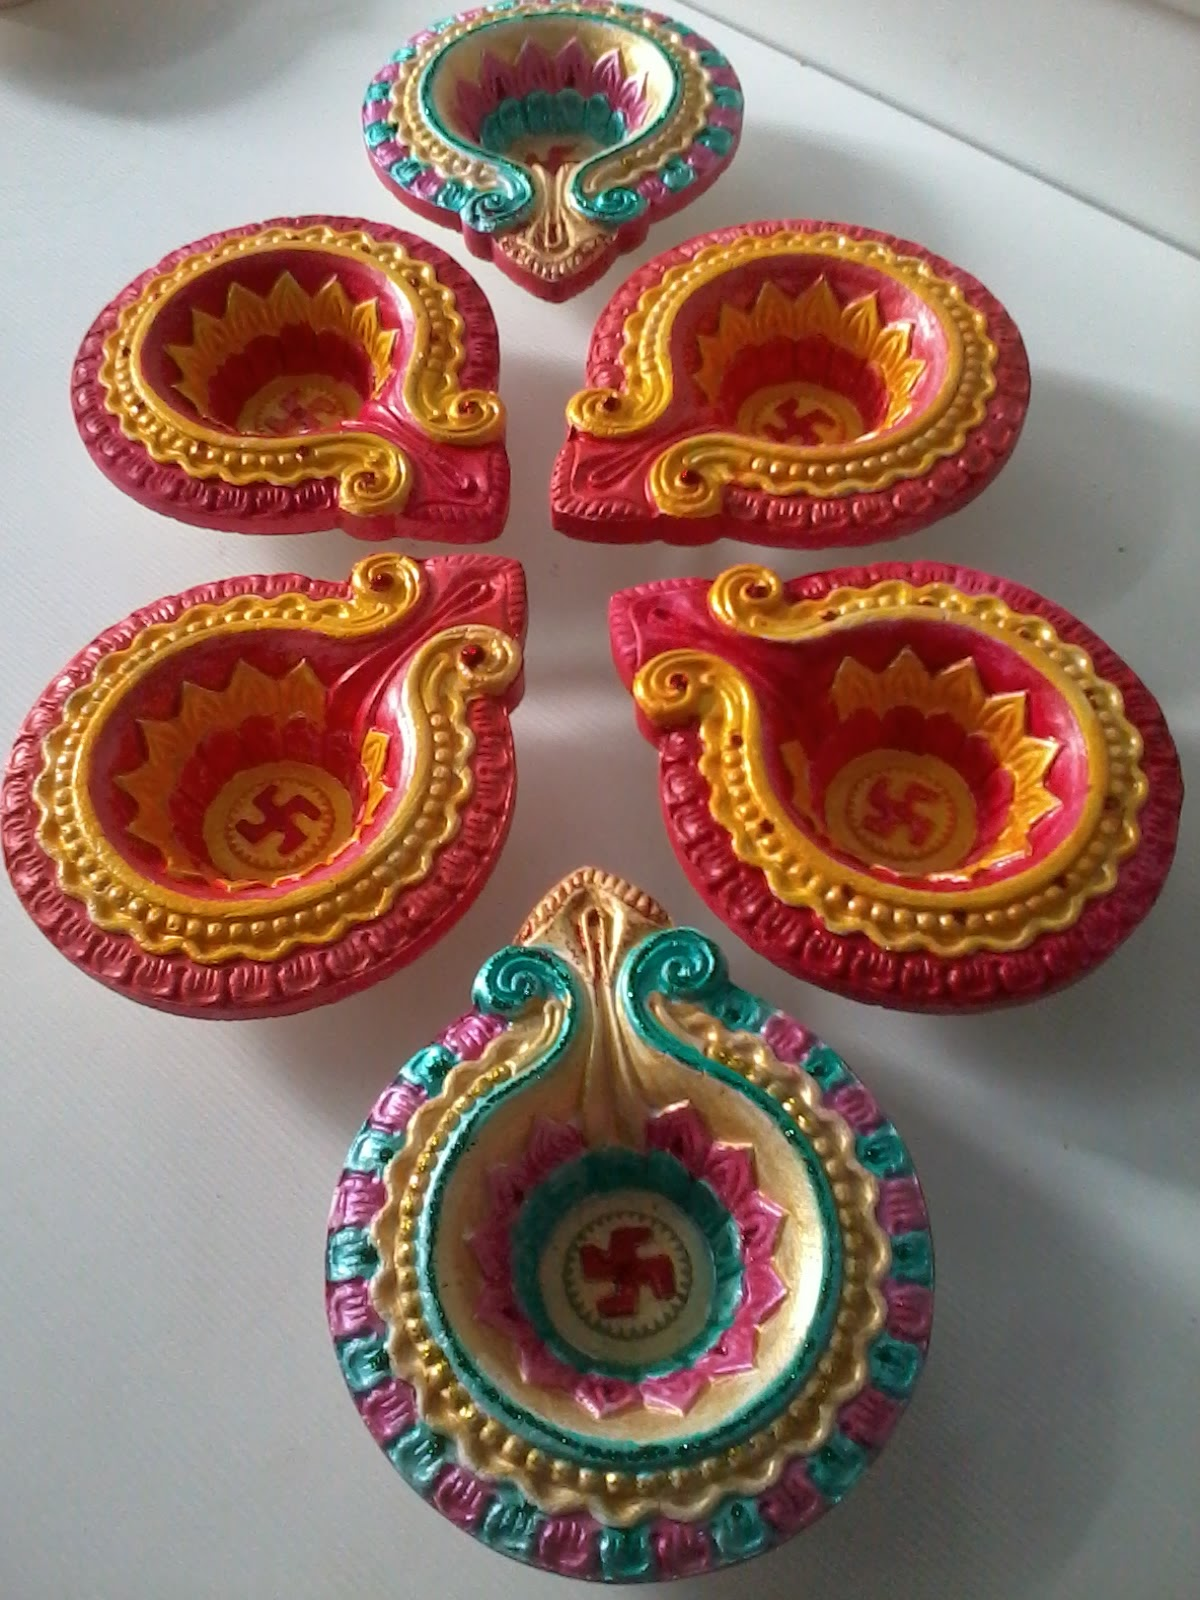 Art corner diwali decorative items for Decorative things